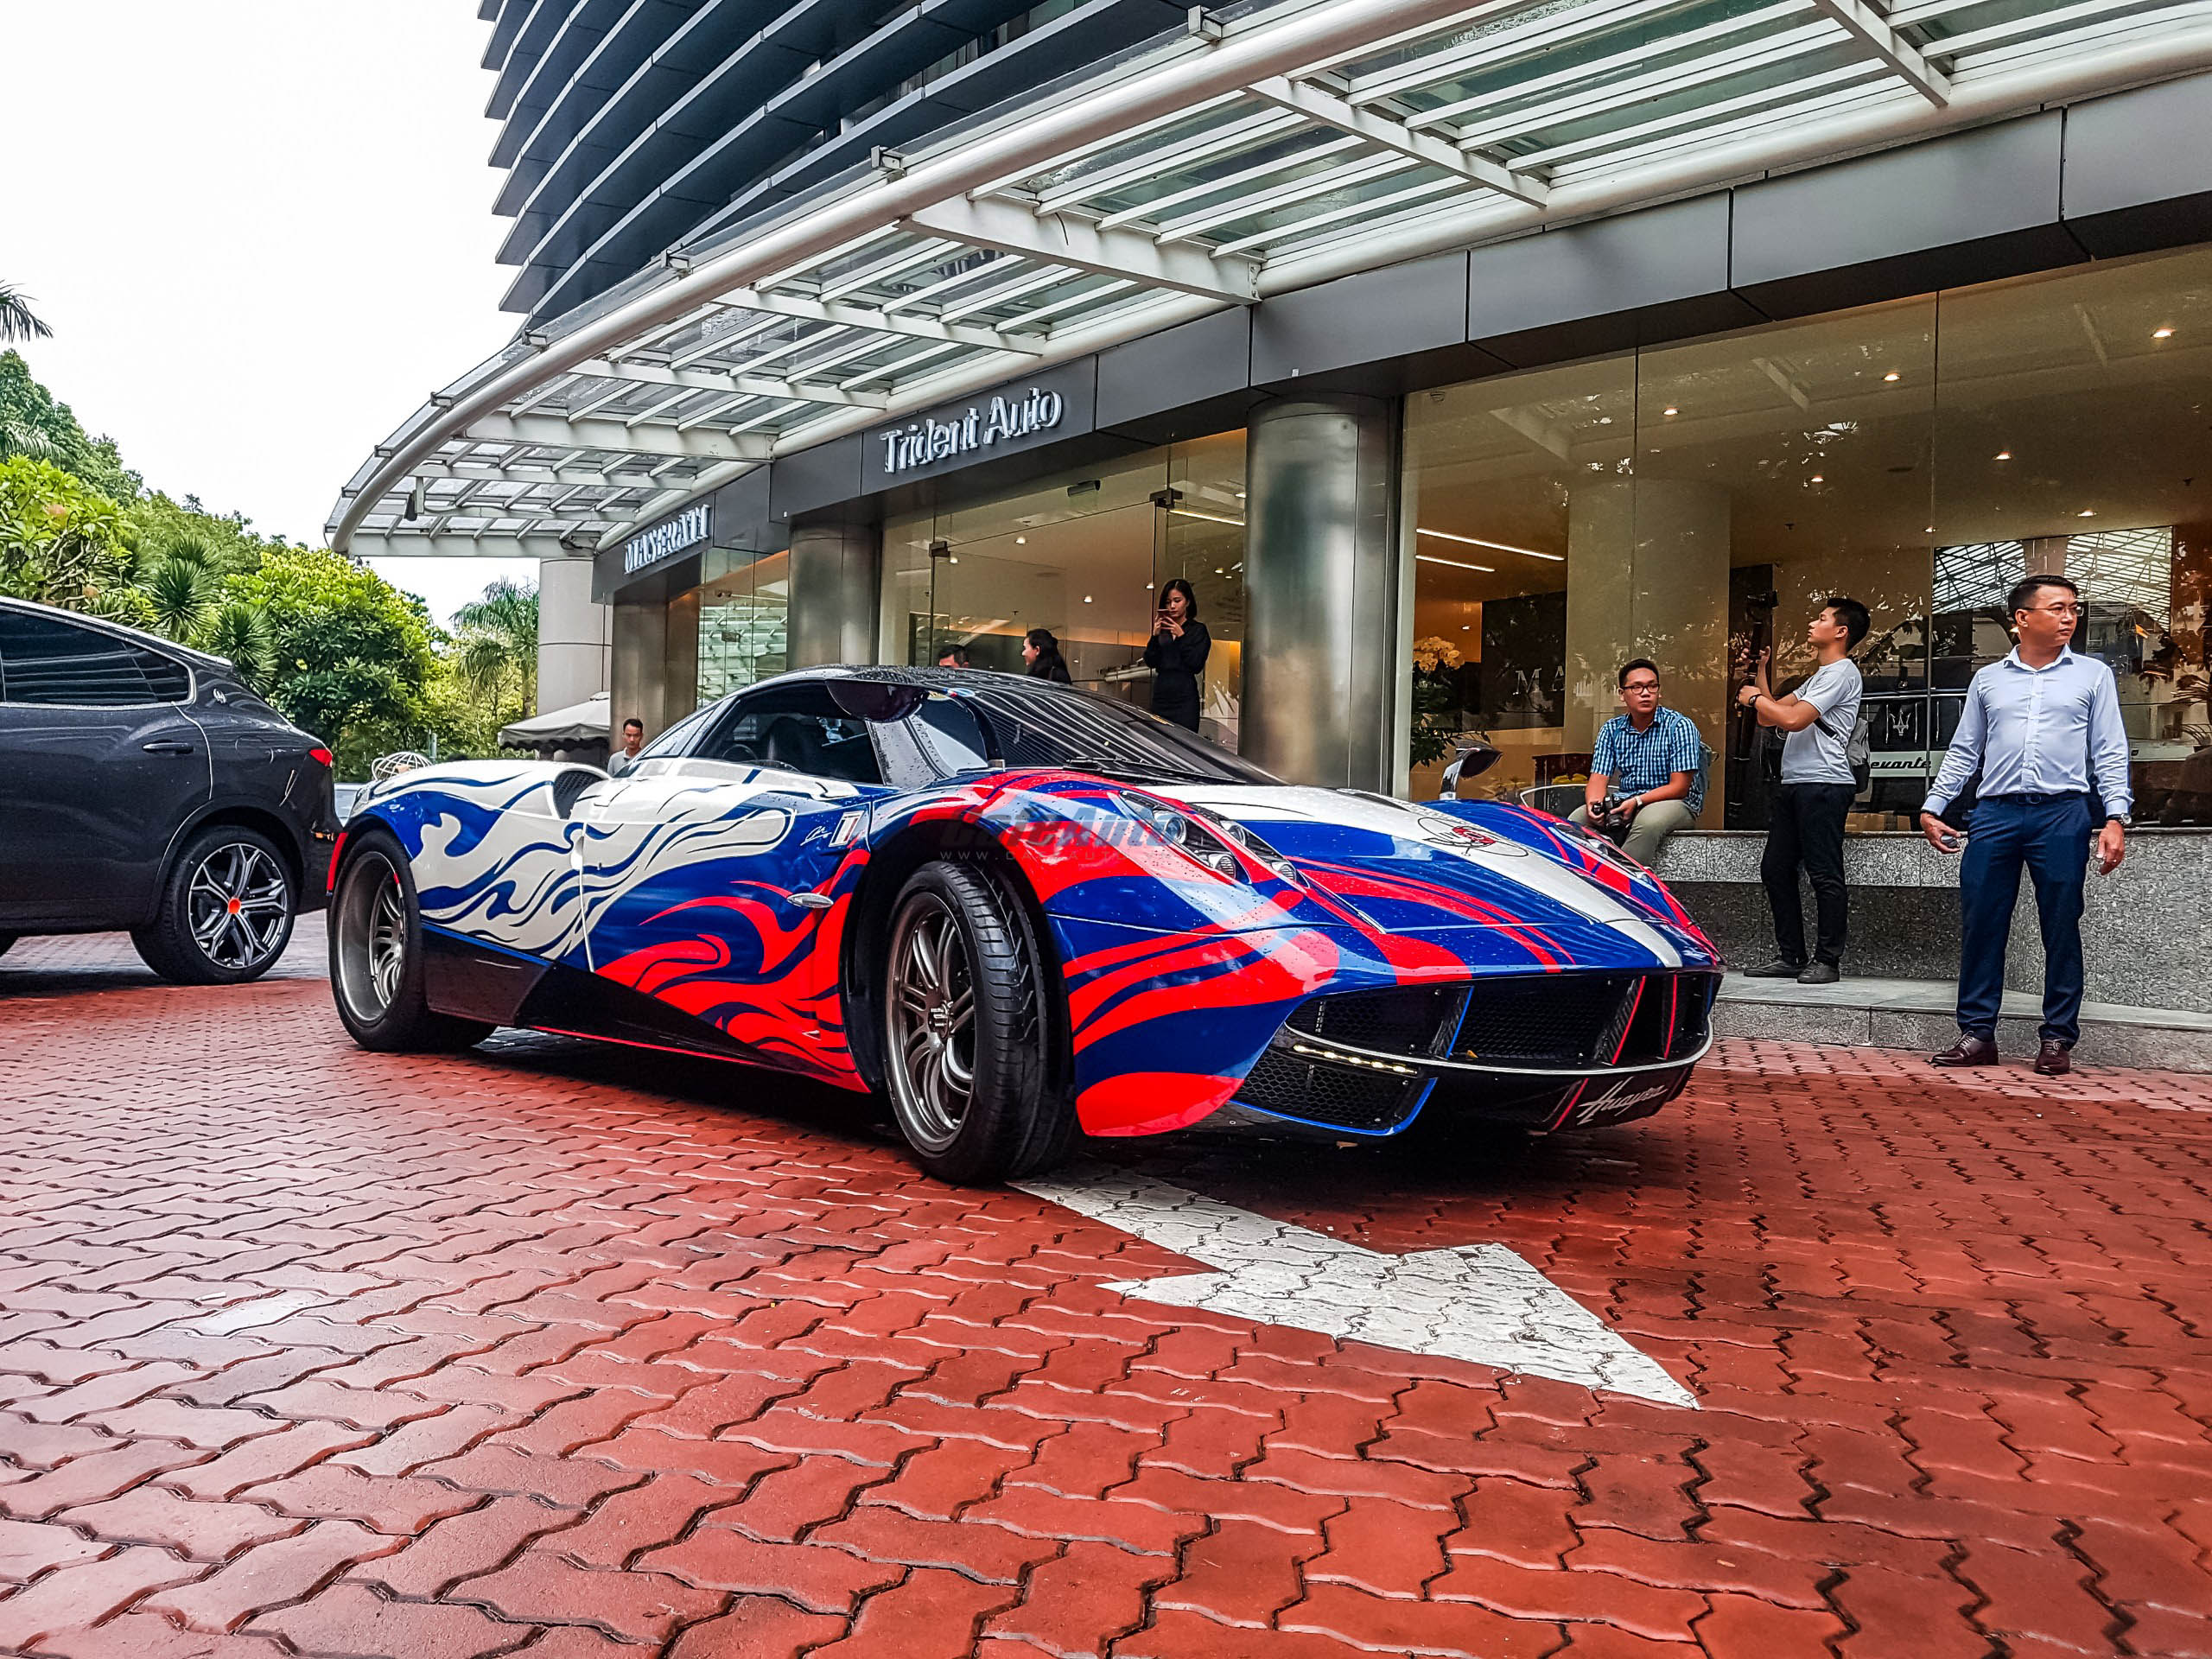 paganihuayra-cafeautovn-8